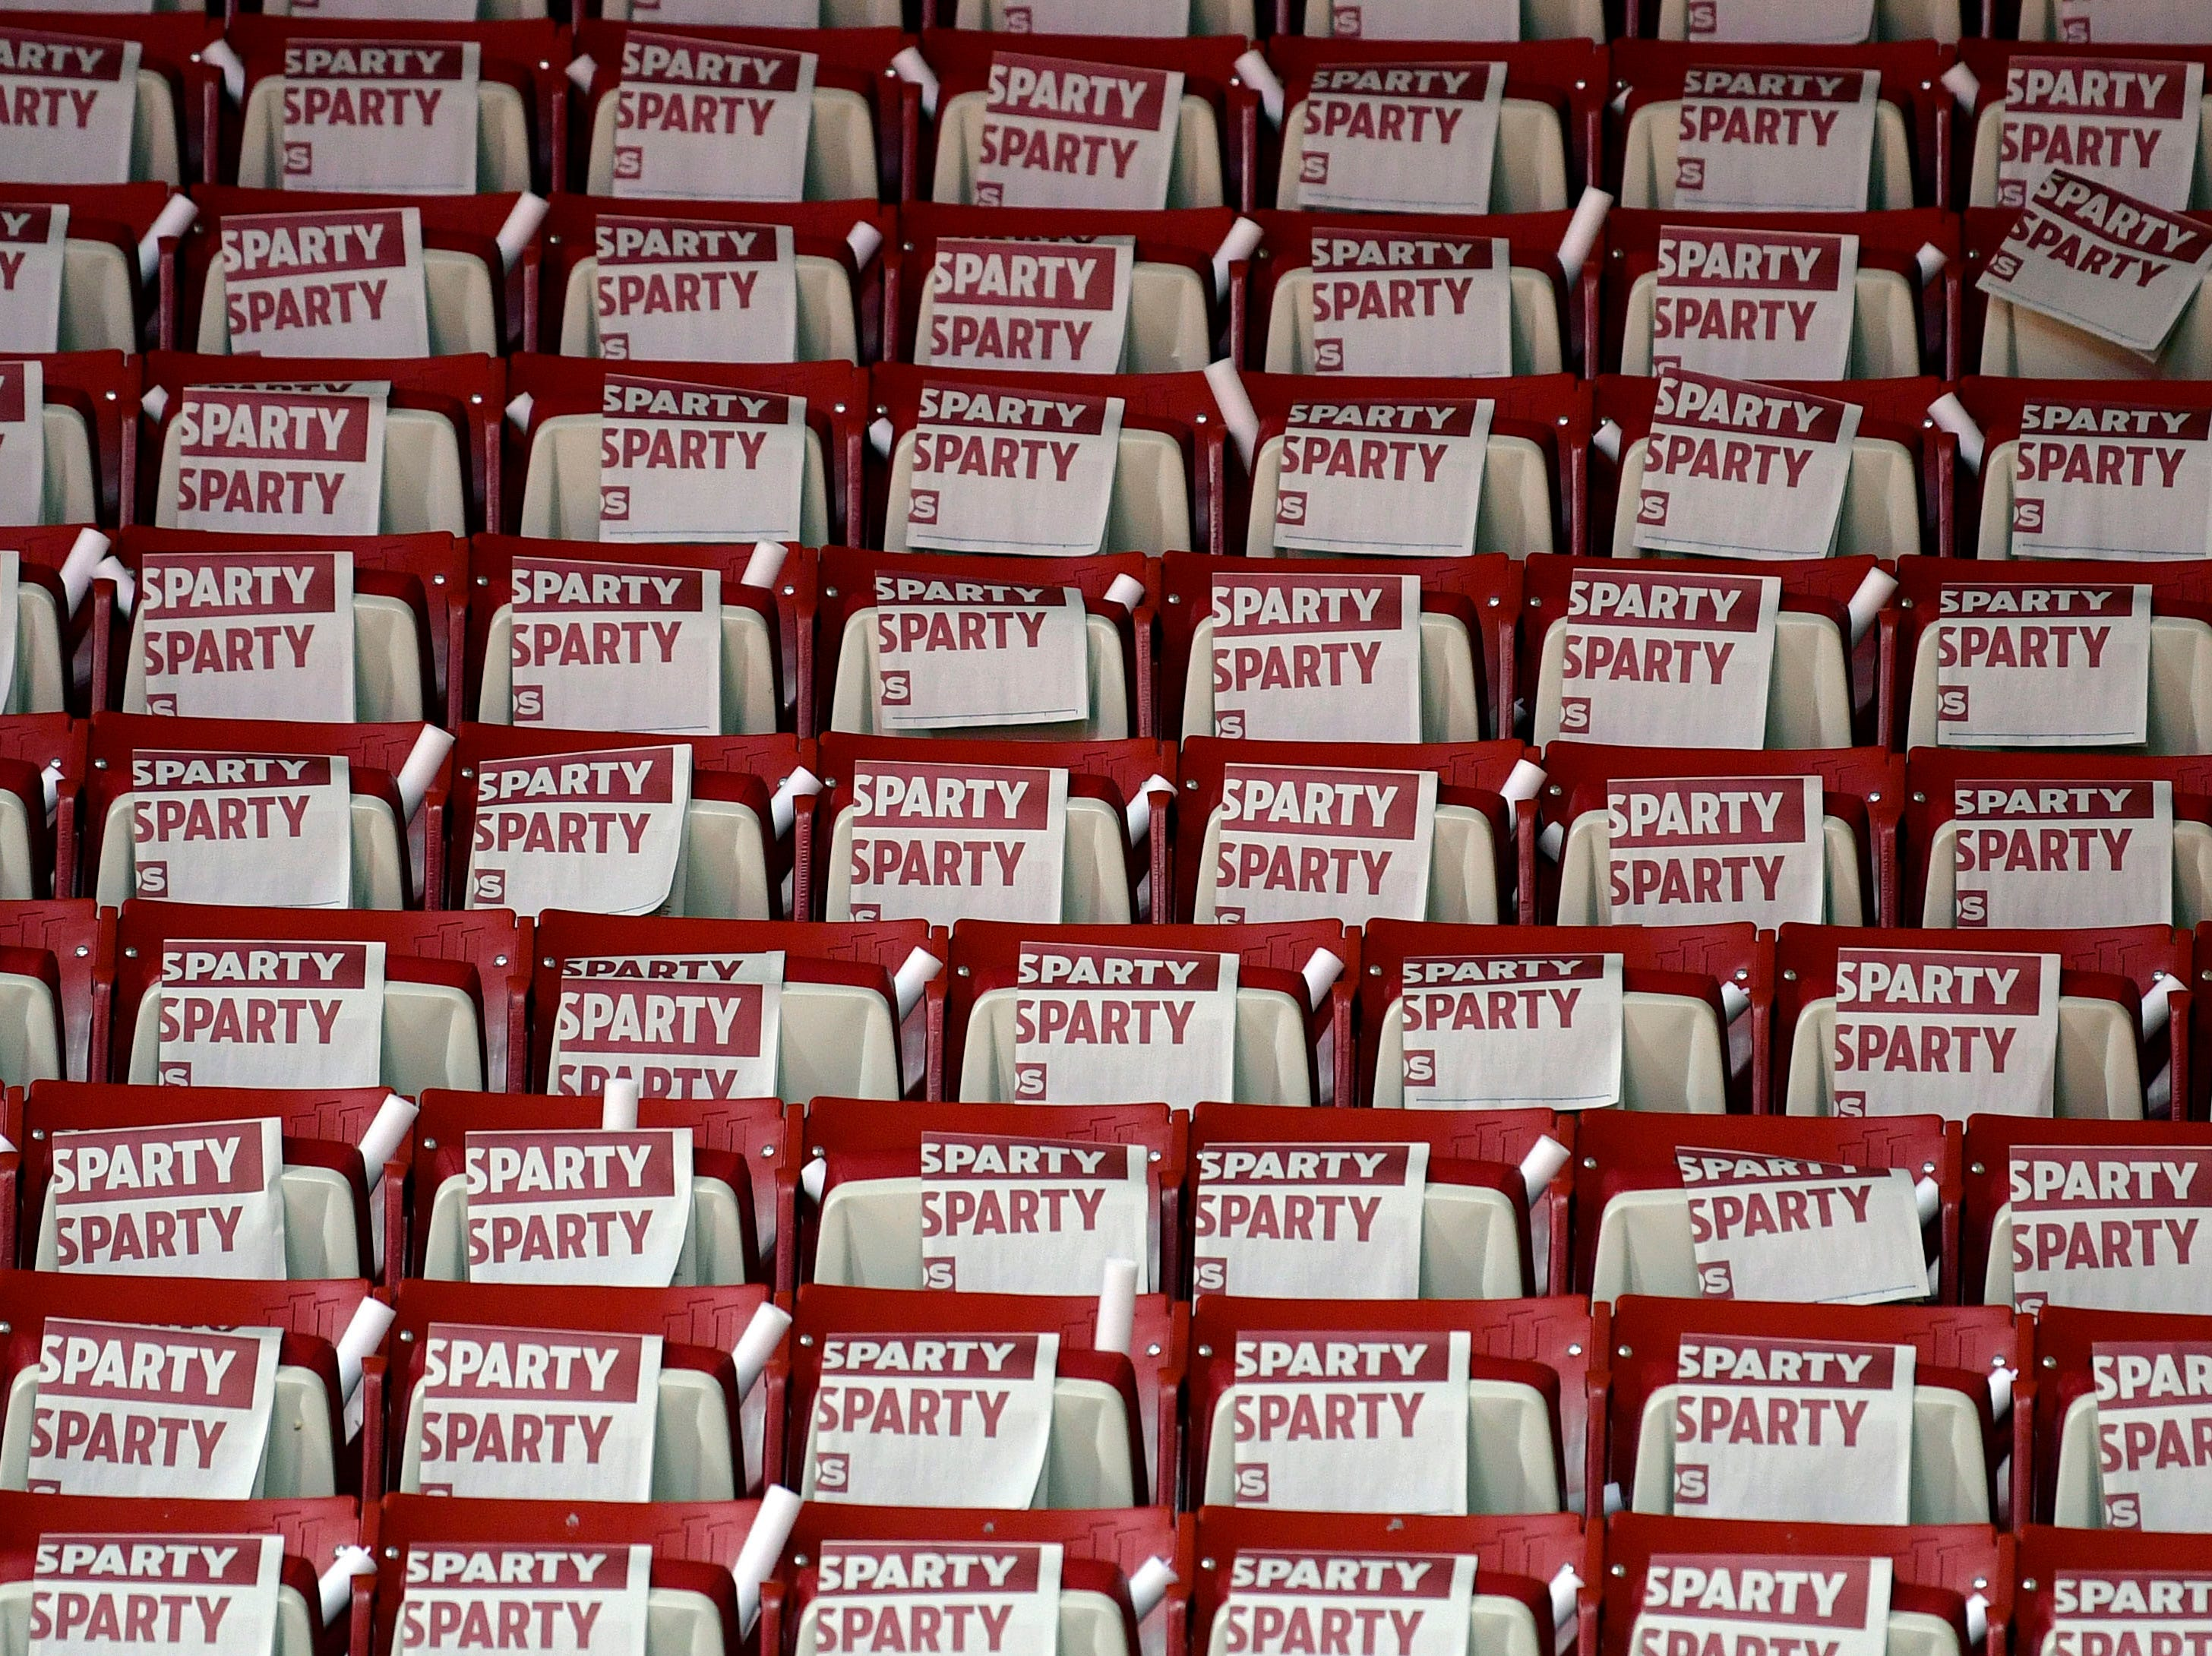 Mar 2, 2019; Bloomington, IN, USA; The seats are lined with Sparty Party newspapers before the game between the Indiana Hoosiers and the Michigan State Spartans at Assembly Hall. Mandatory Credit: Marc Lebryk-USA TODAY Sports